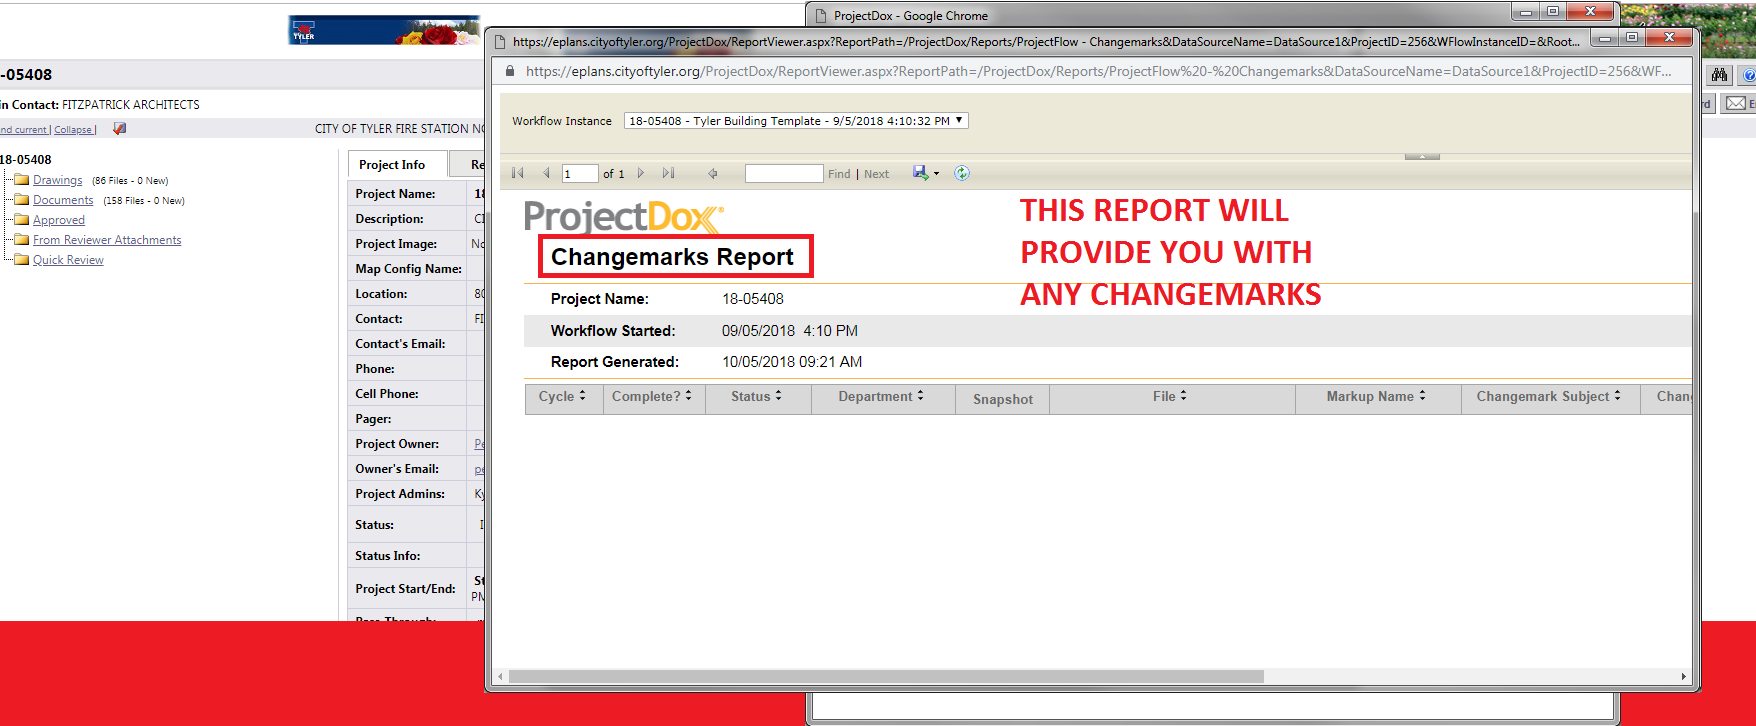 This report will provide you with any changemarks